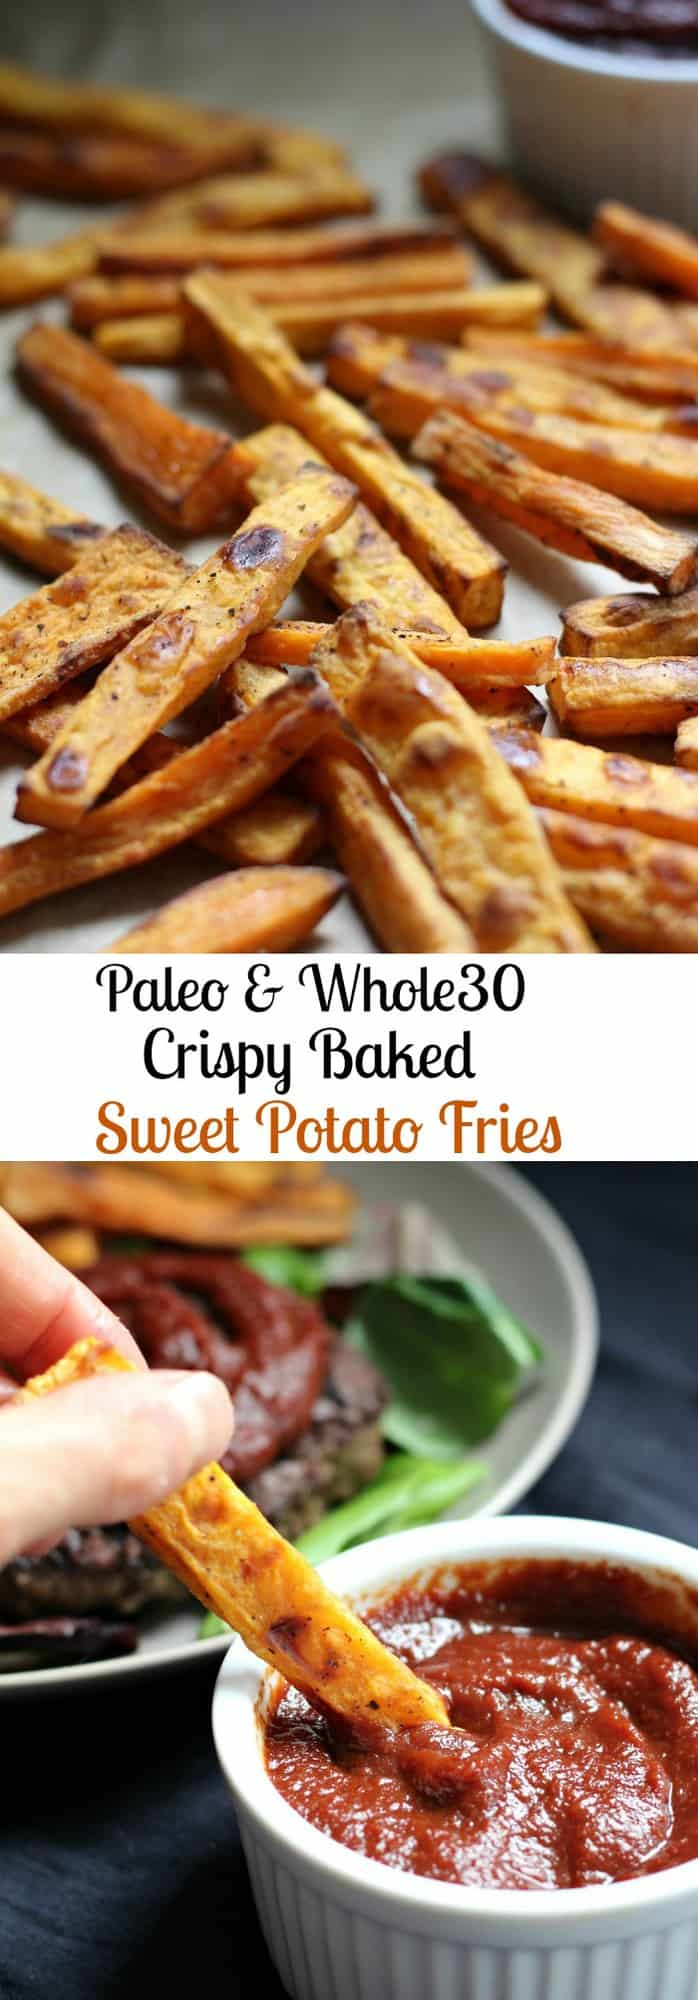 Paleo & Whole30 Crispy Baked Sweet Potato Fries